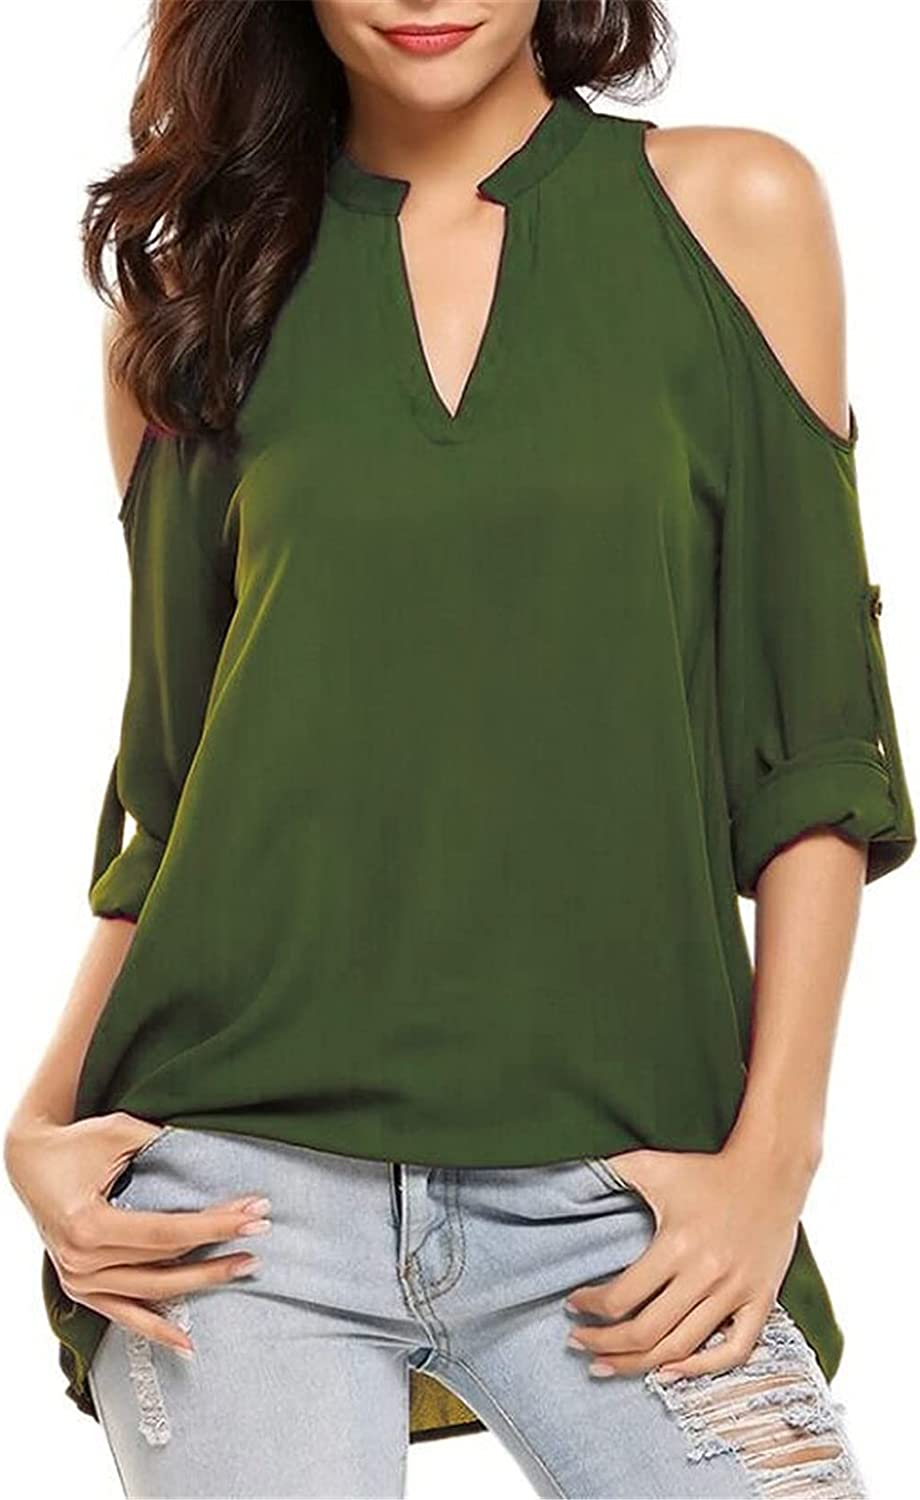 Andongnywell 55% OFF Women's V Neck Pullover Max 79% OFF Blouse Top Blou Sweatshirts